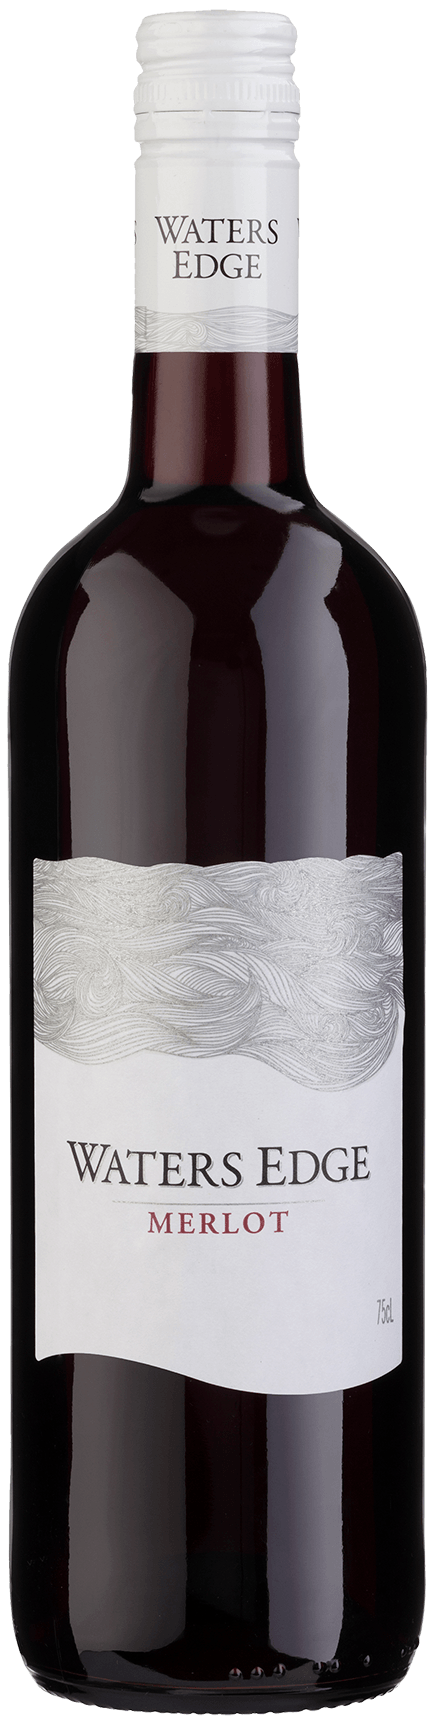 Image 0: Waters Edge Merlot